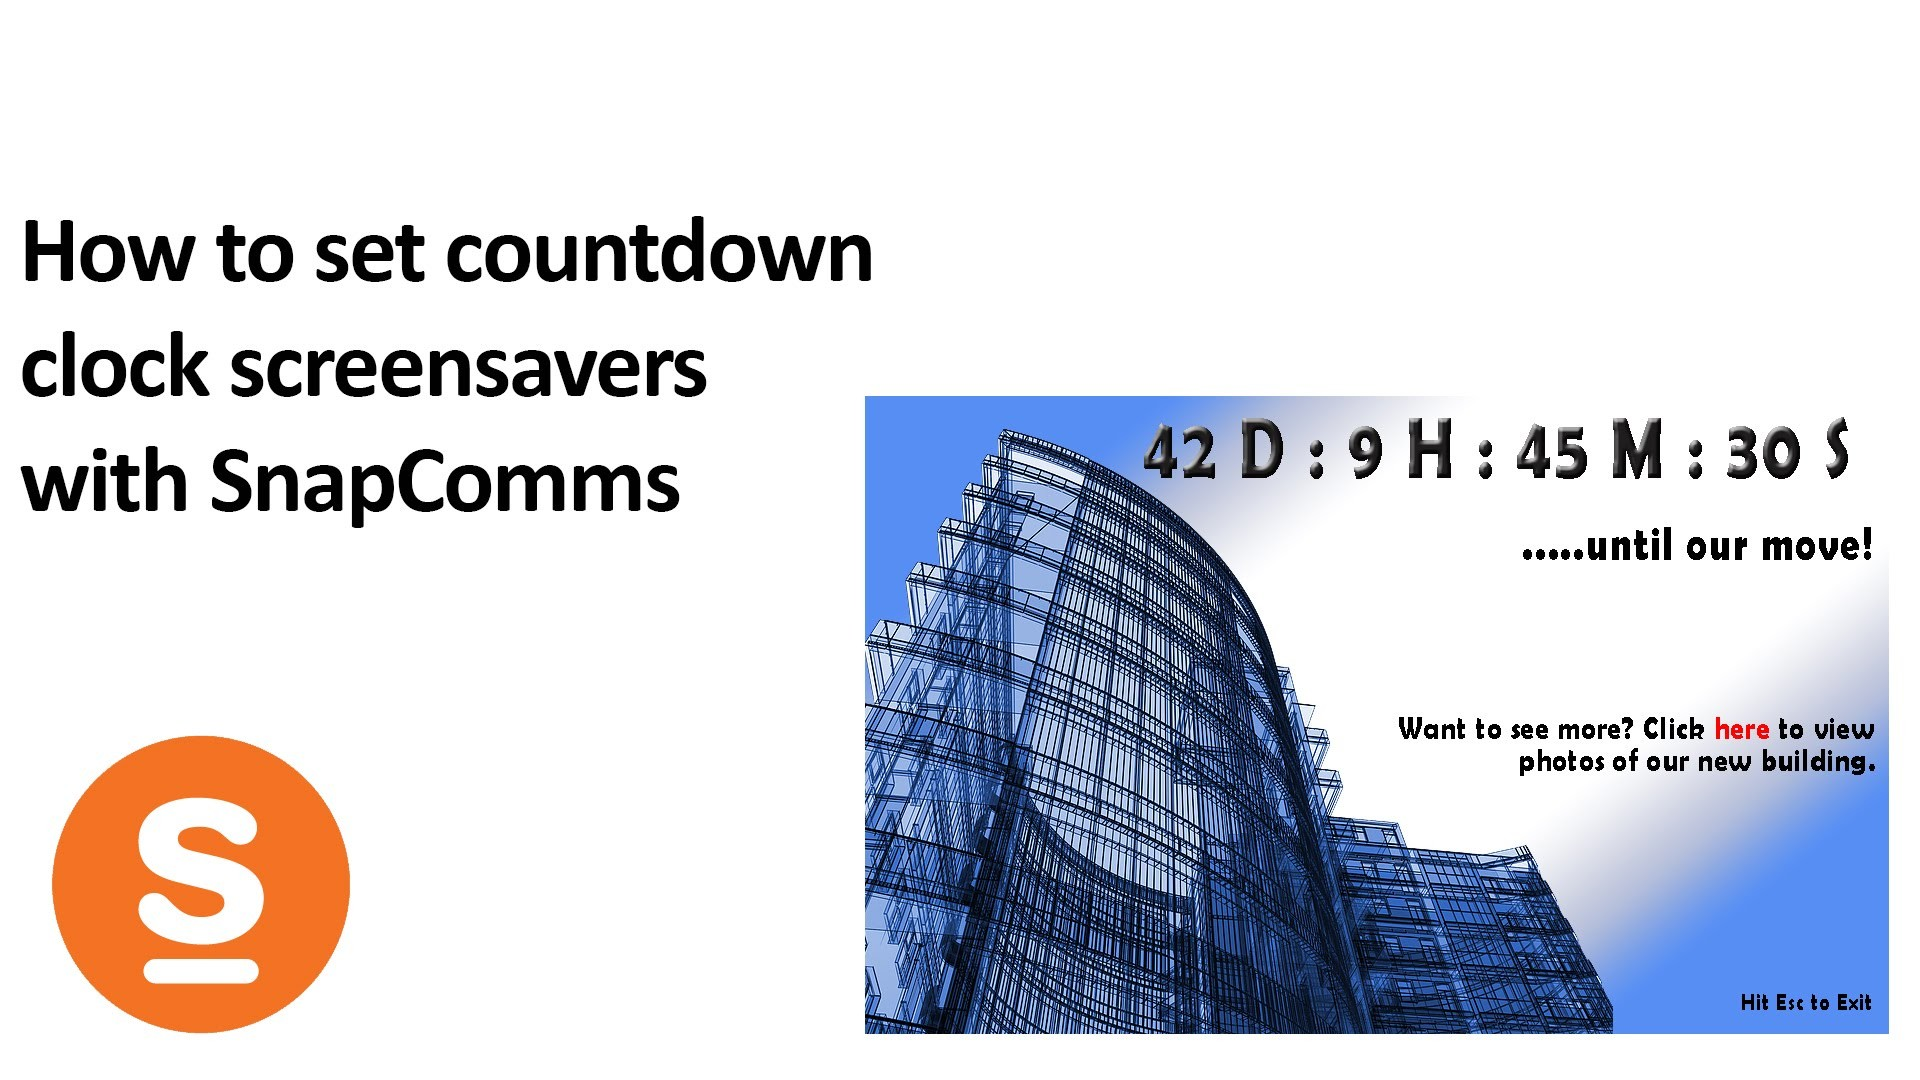 How to put a count down clock on a company screensaver with SnapComms –  YouTube